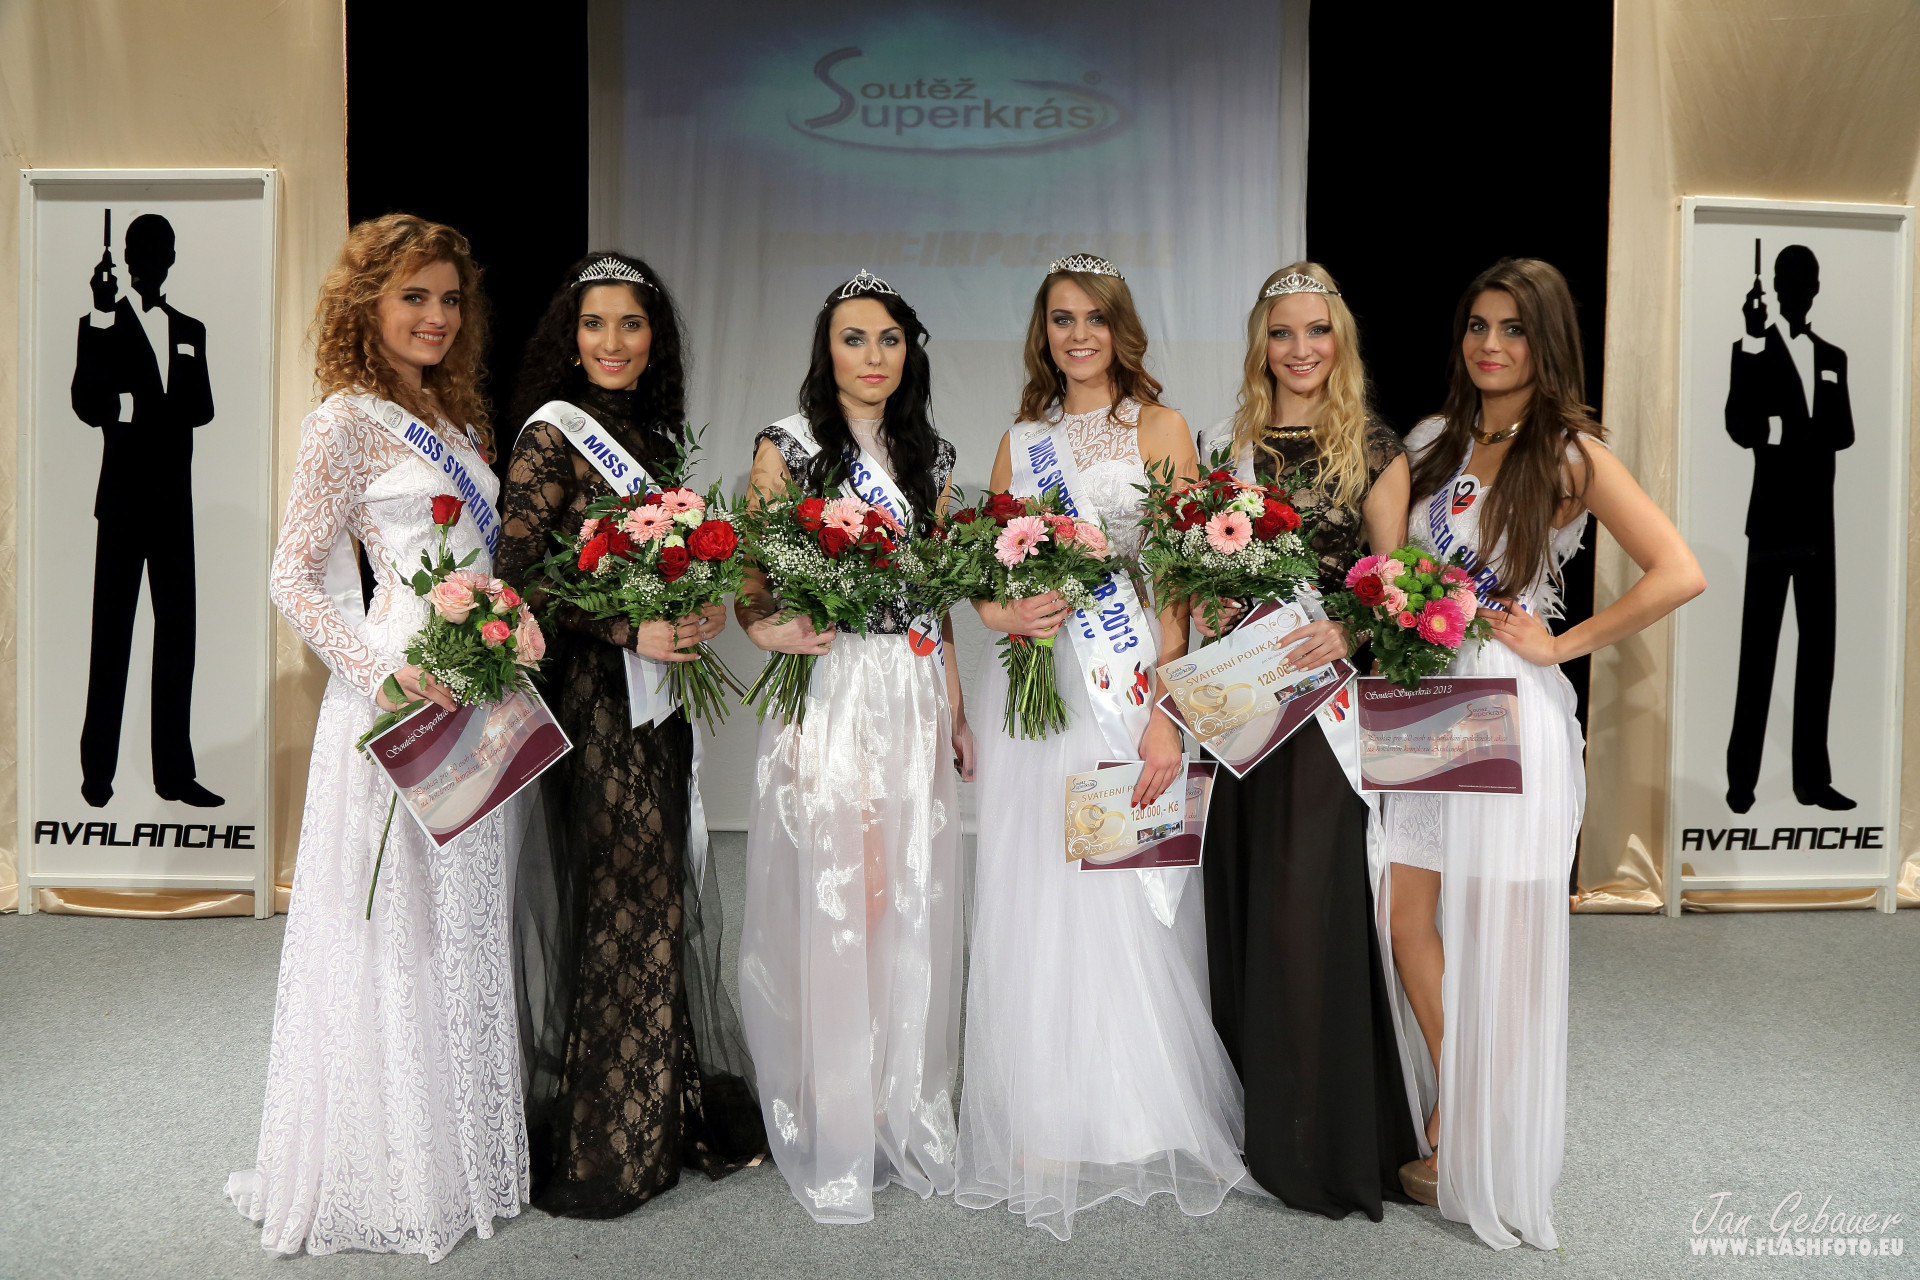 Miss Superkrás 2013